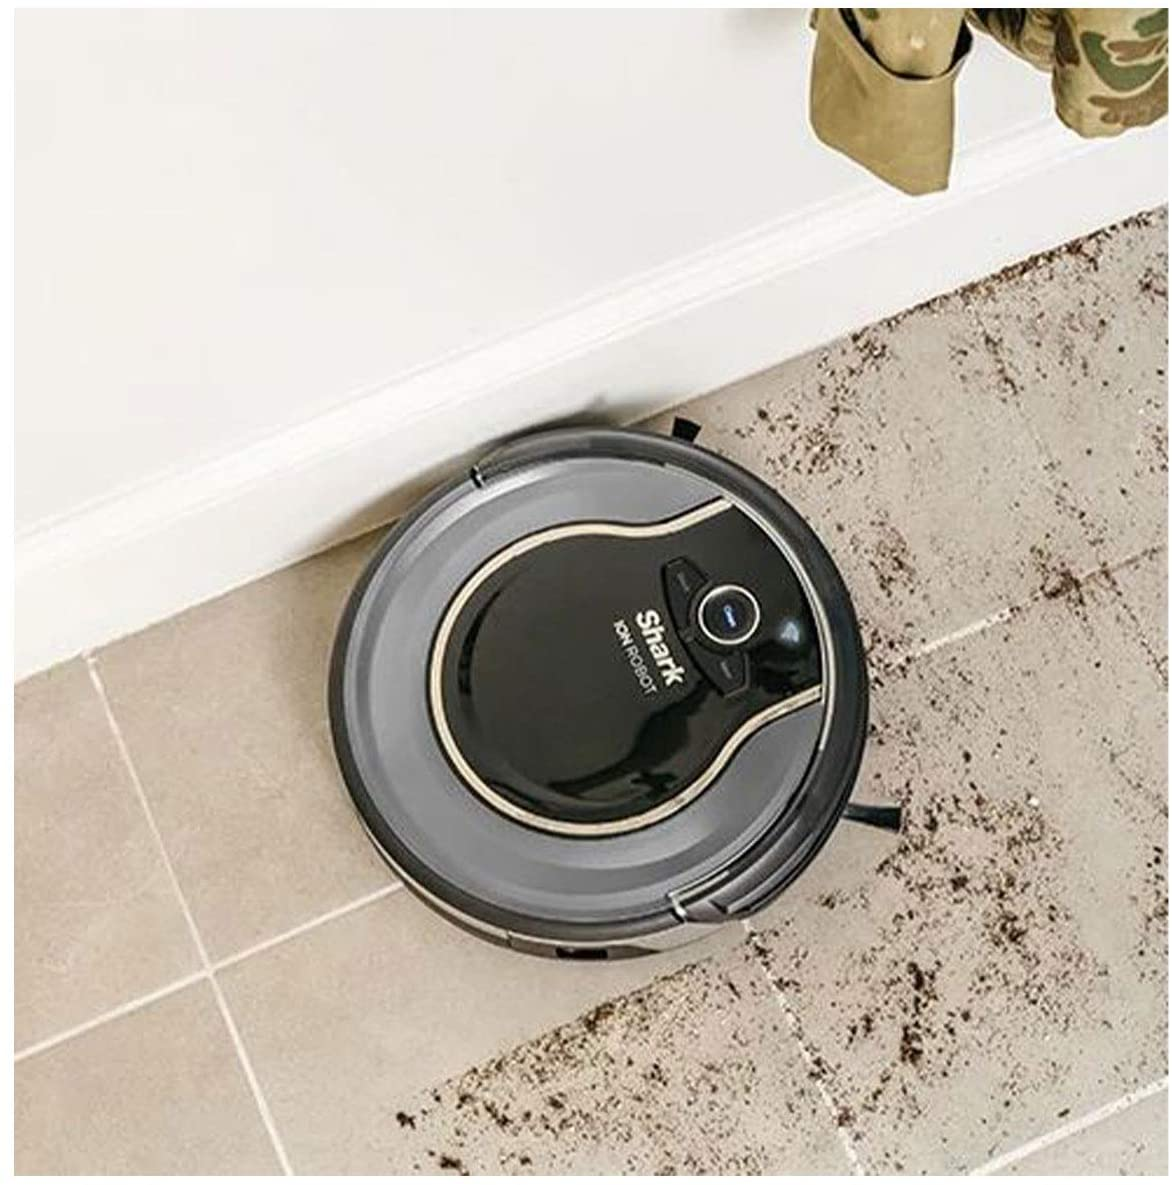 shark ion robot vacuum cleaner sucking up dirt and being perfect